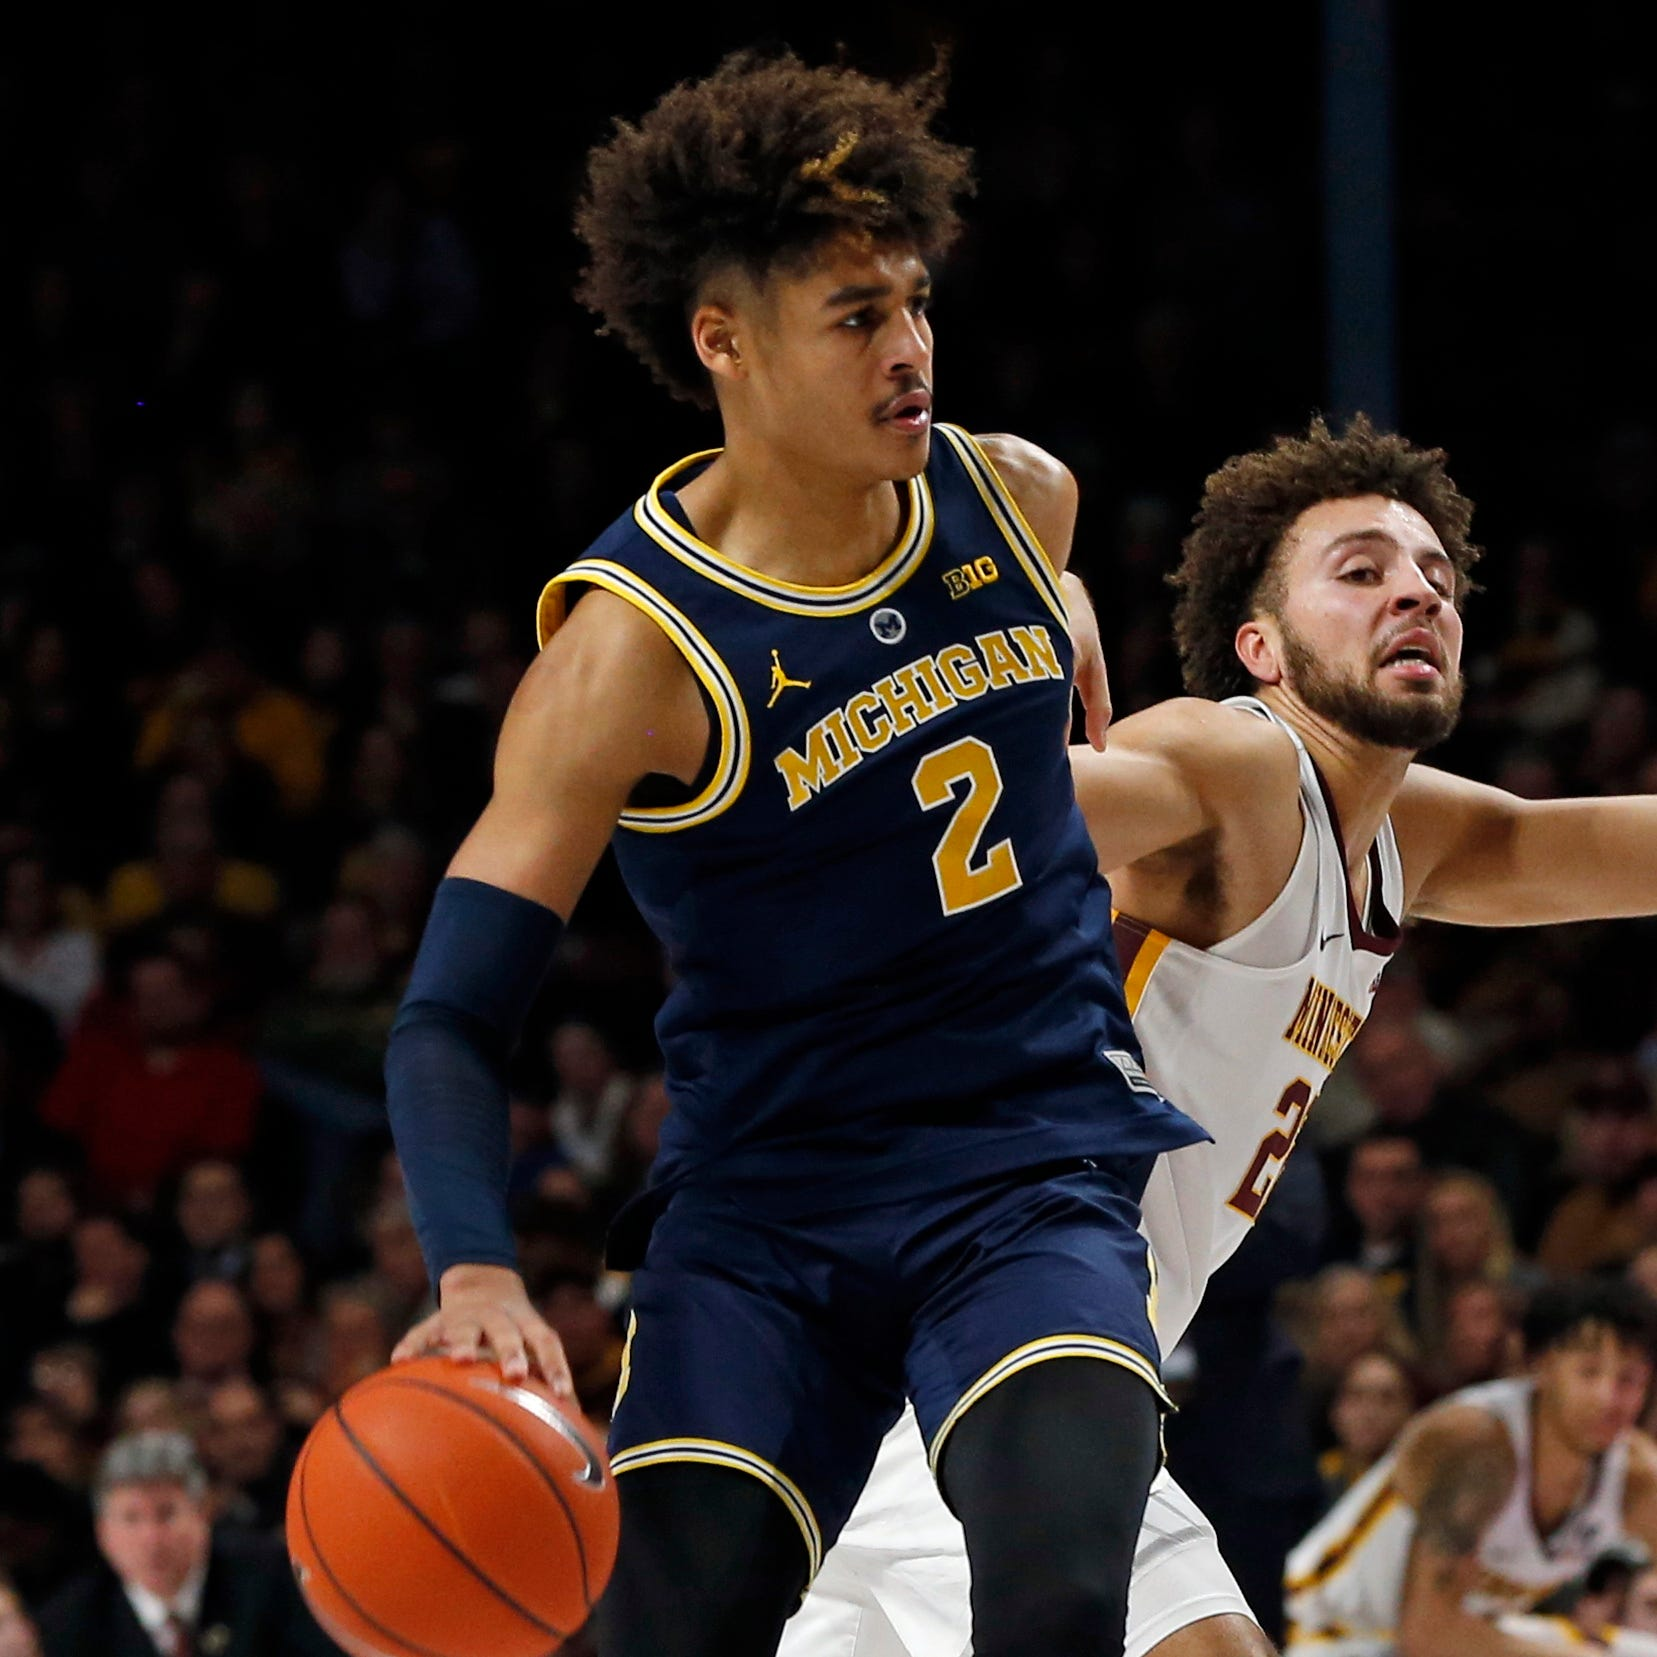 In 'tournament' mode, Michigan handles Minnesota as MSU clash looms